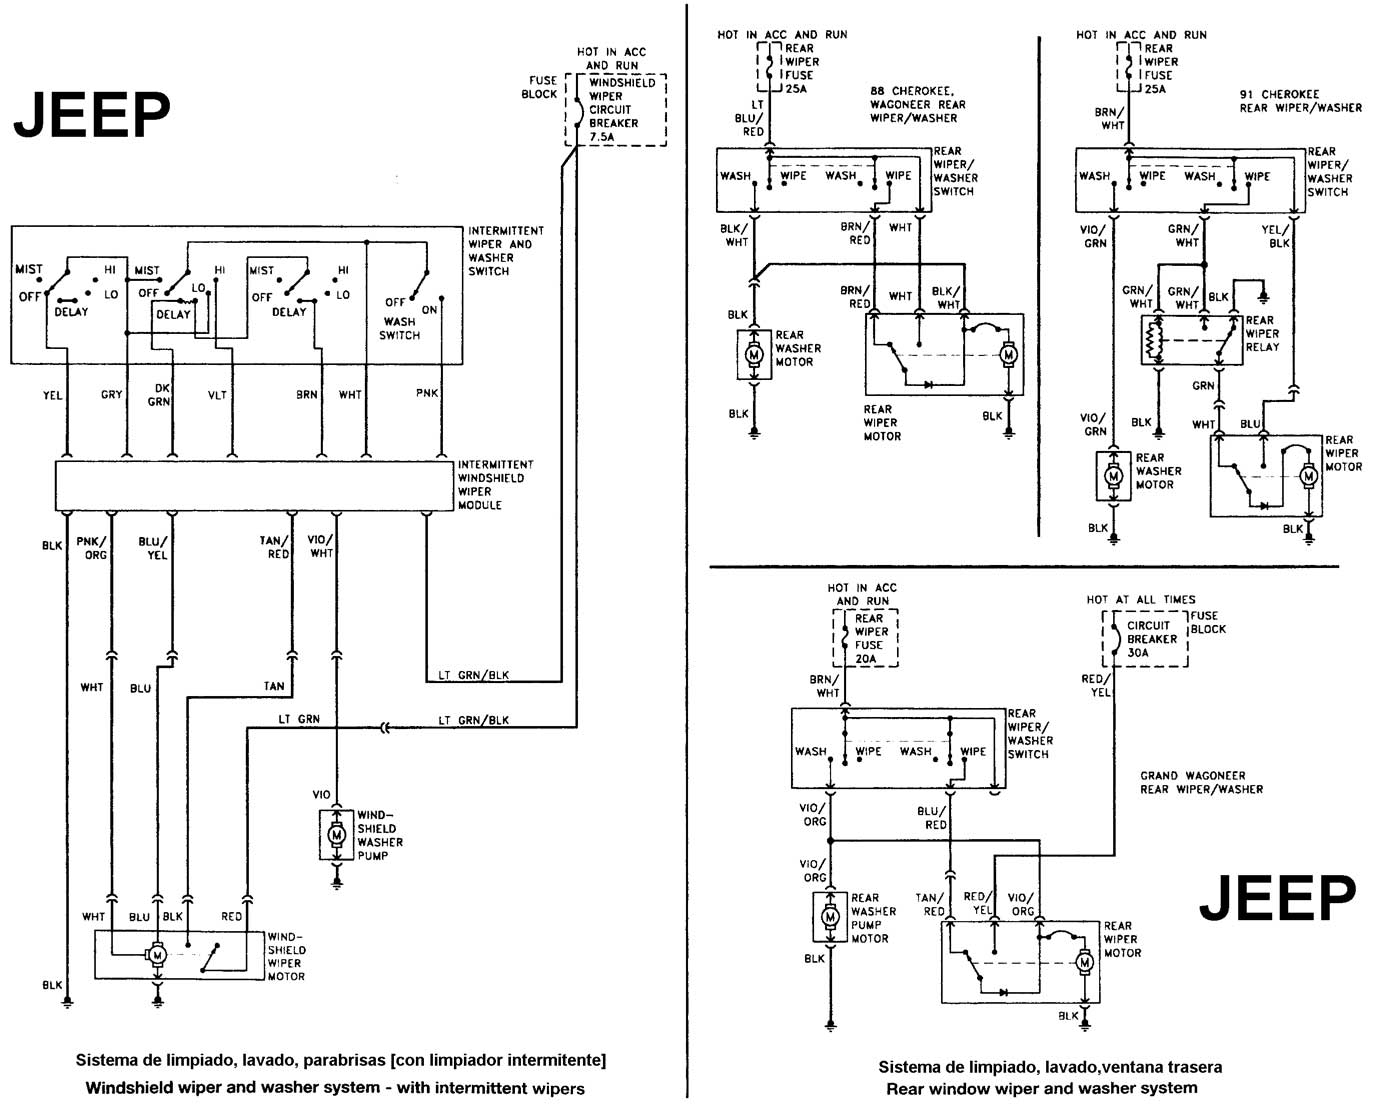 hight resolution of wiring diagram for 1986 jeep comanche wiring diagram for 1989 jeep cherokee wiring diagram 1986 jeep cherokee vacuum diagram